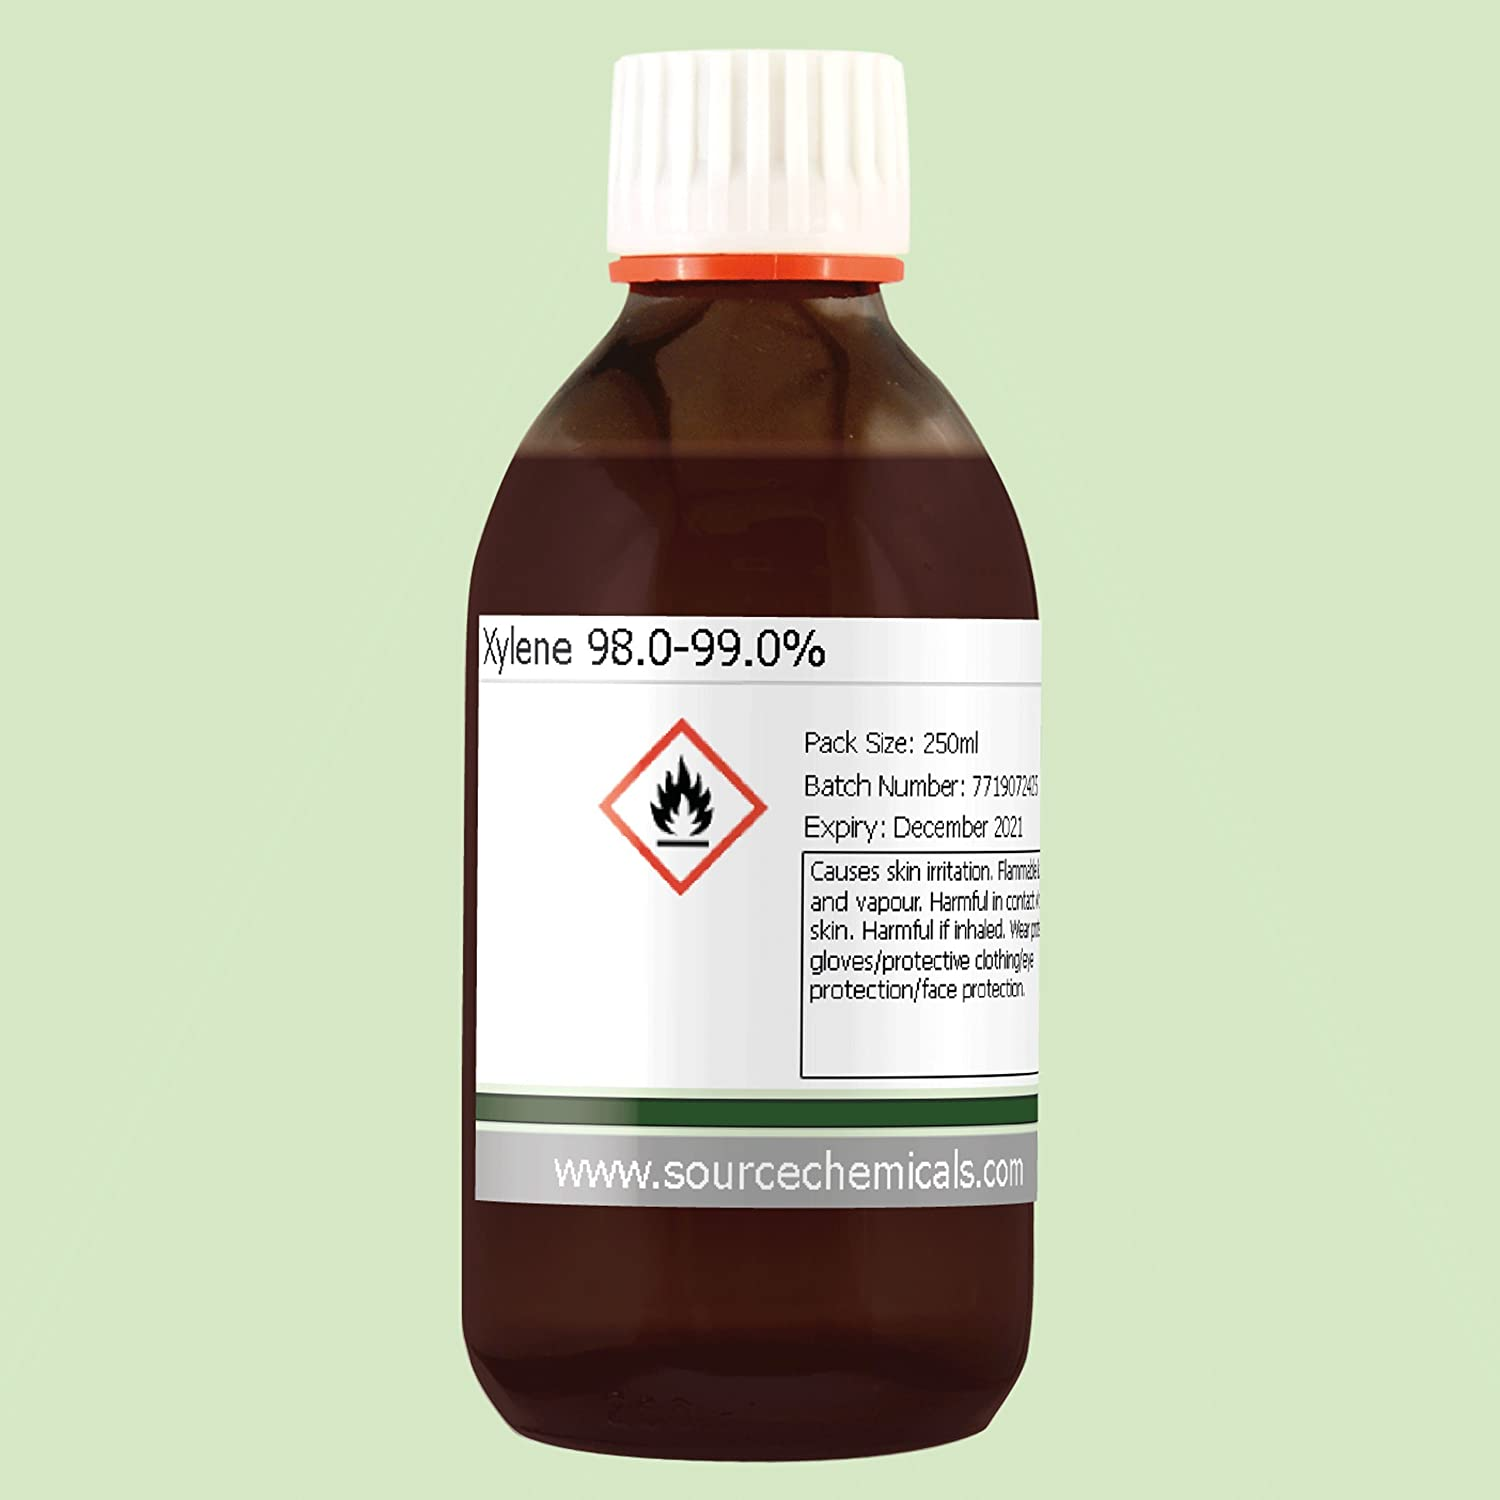 Xylene 98 0-99 0% (Paint Thinner) 250ml Including Delivery: Amazon